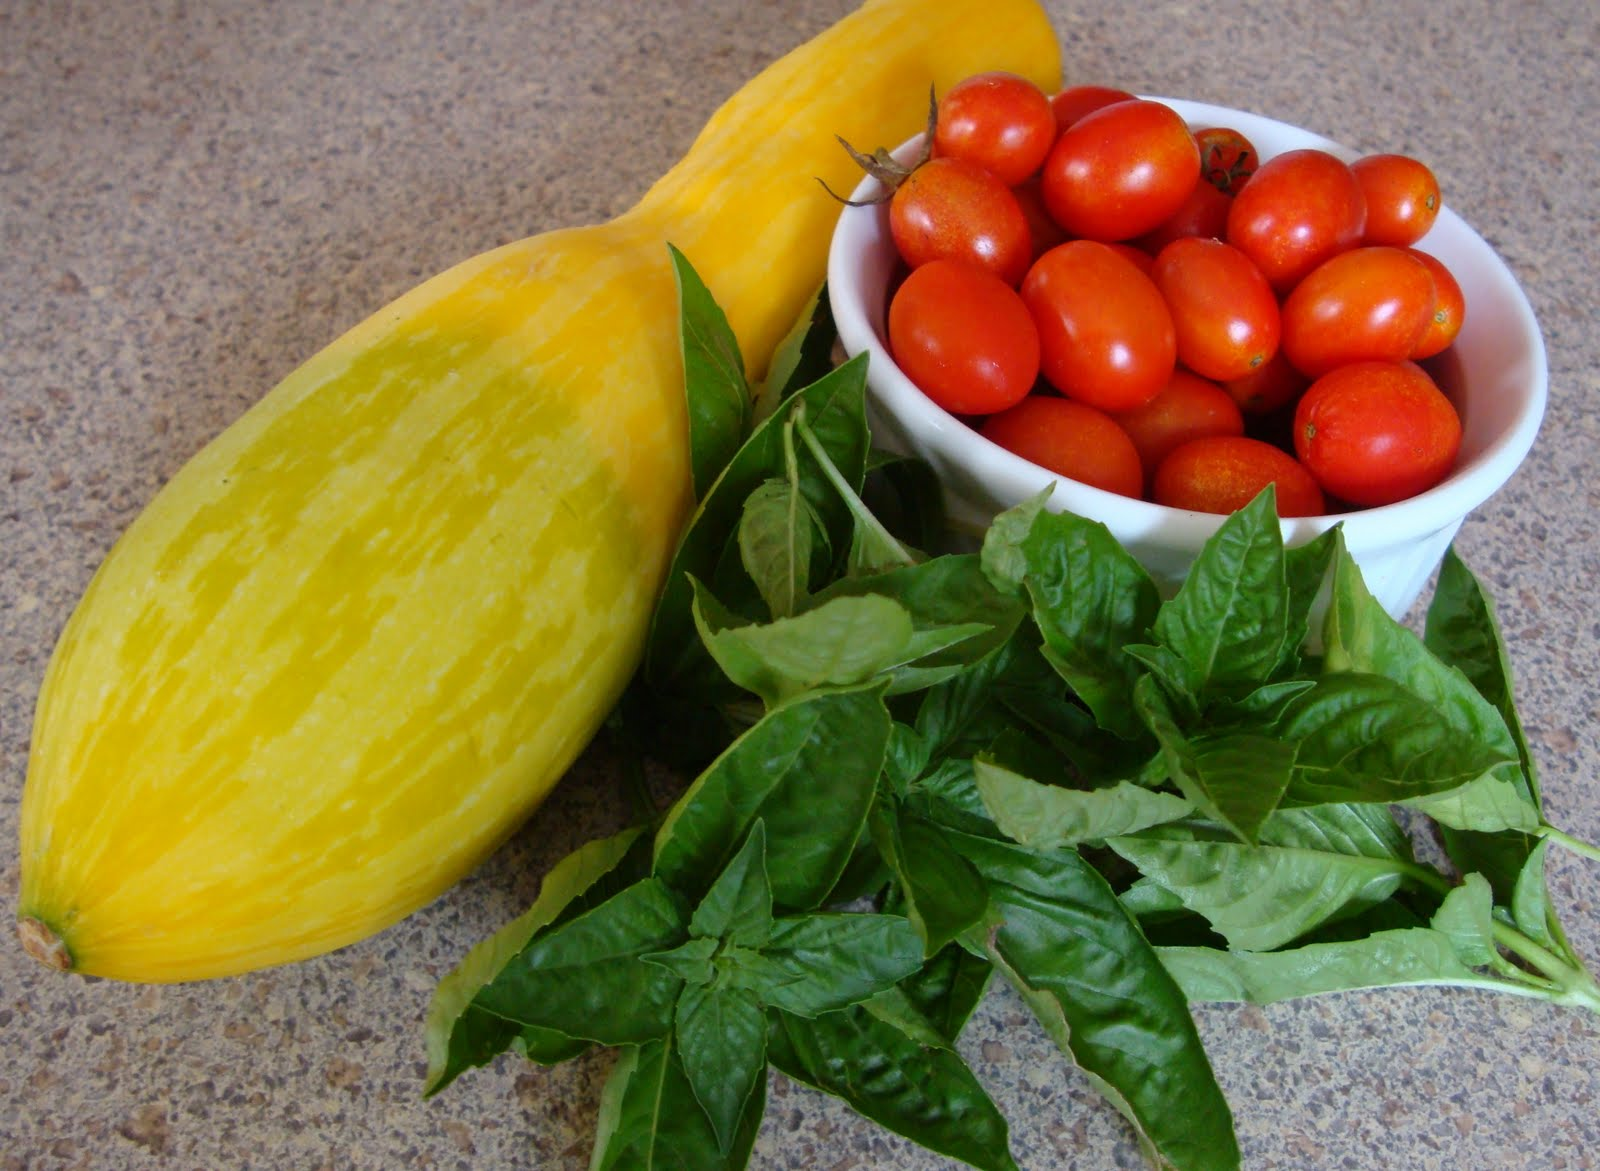 Summer Squash, Tomato, and Basil Pasta